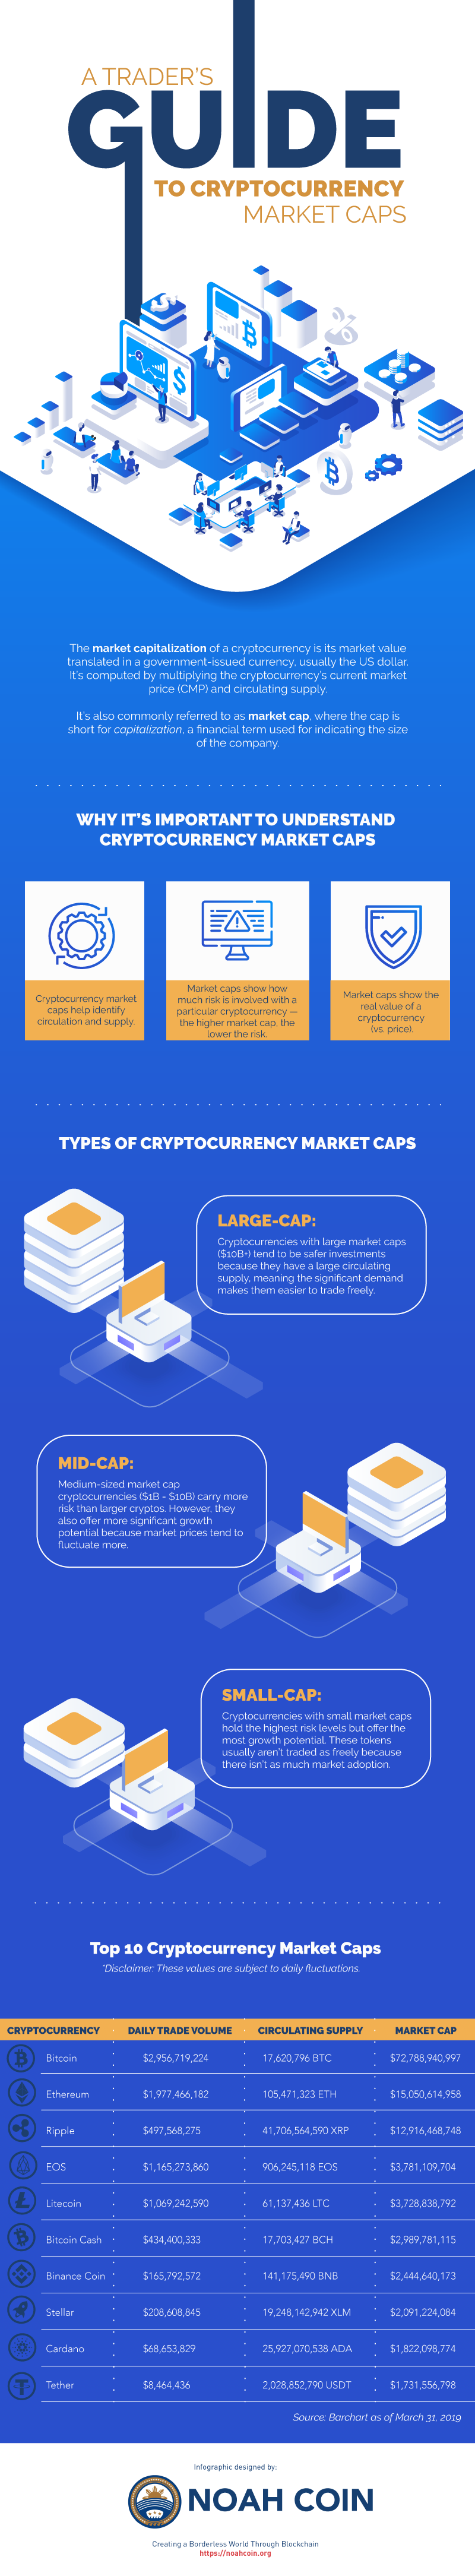 A-Traders-Guide-to-Cryptocurrency-Market-Caps-Infographic-1